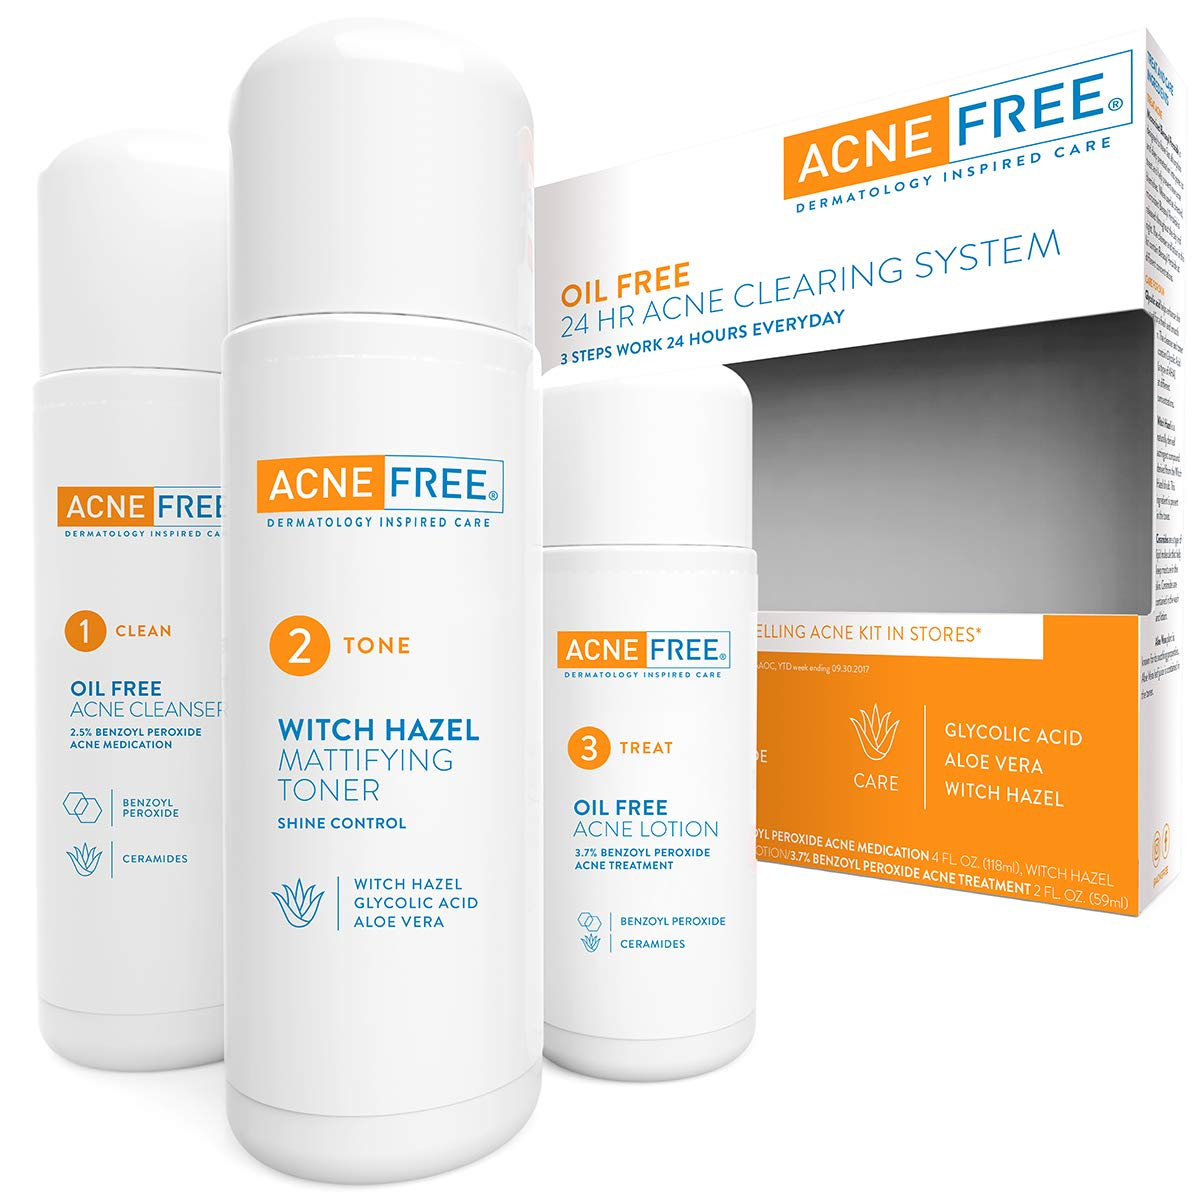 Acne Free 3 Step 24 Hour Acne Treatment Kit - Clearing System w Oil Free Acne Cleanser, Witch Hazel Toner, & Oil Free Acne Lotion - Acne Solution w/ Benzoyl Peroxide for Teens and Adults - Original: Beauty